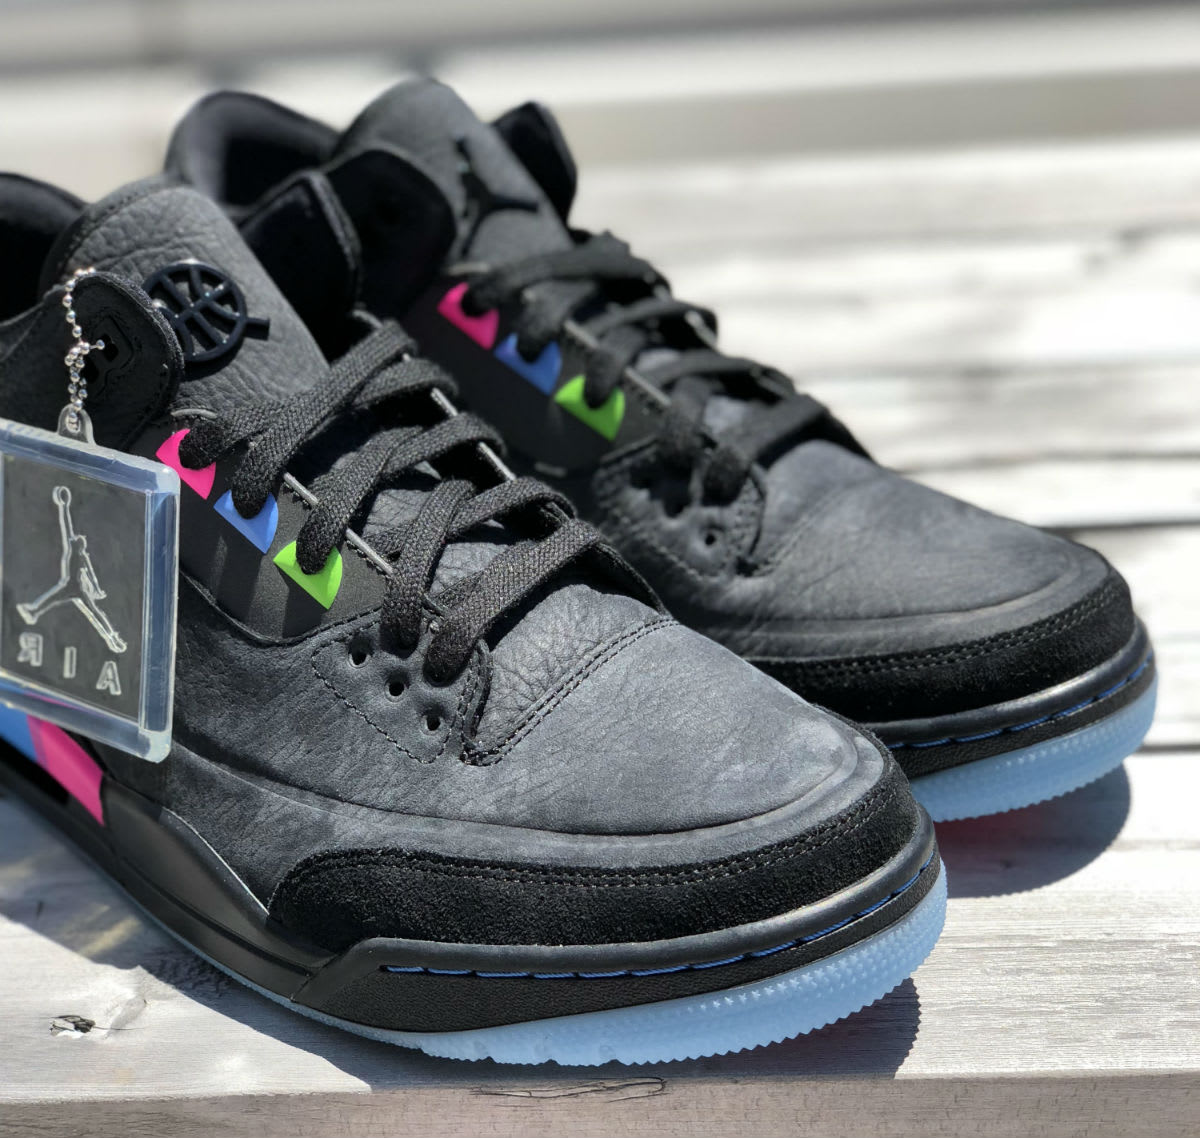 Air Jordan 3 III Quai 54 Release Date AT9195-001 Front